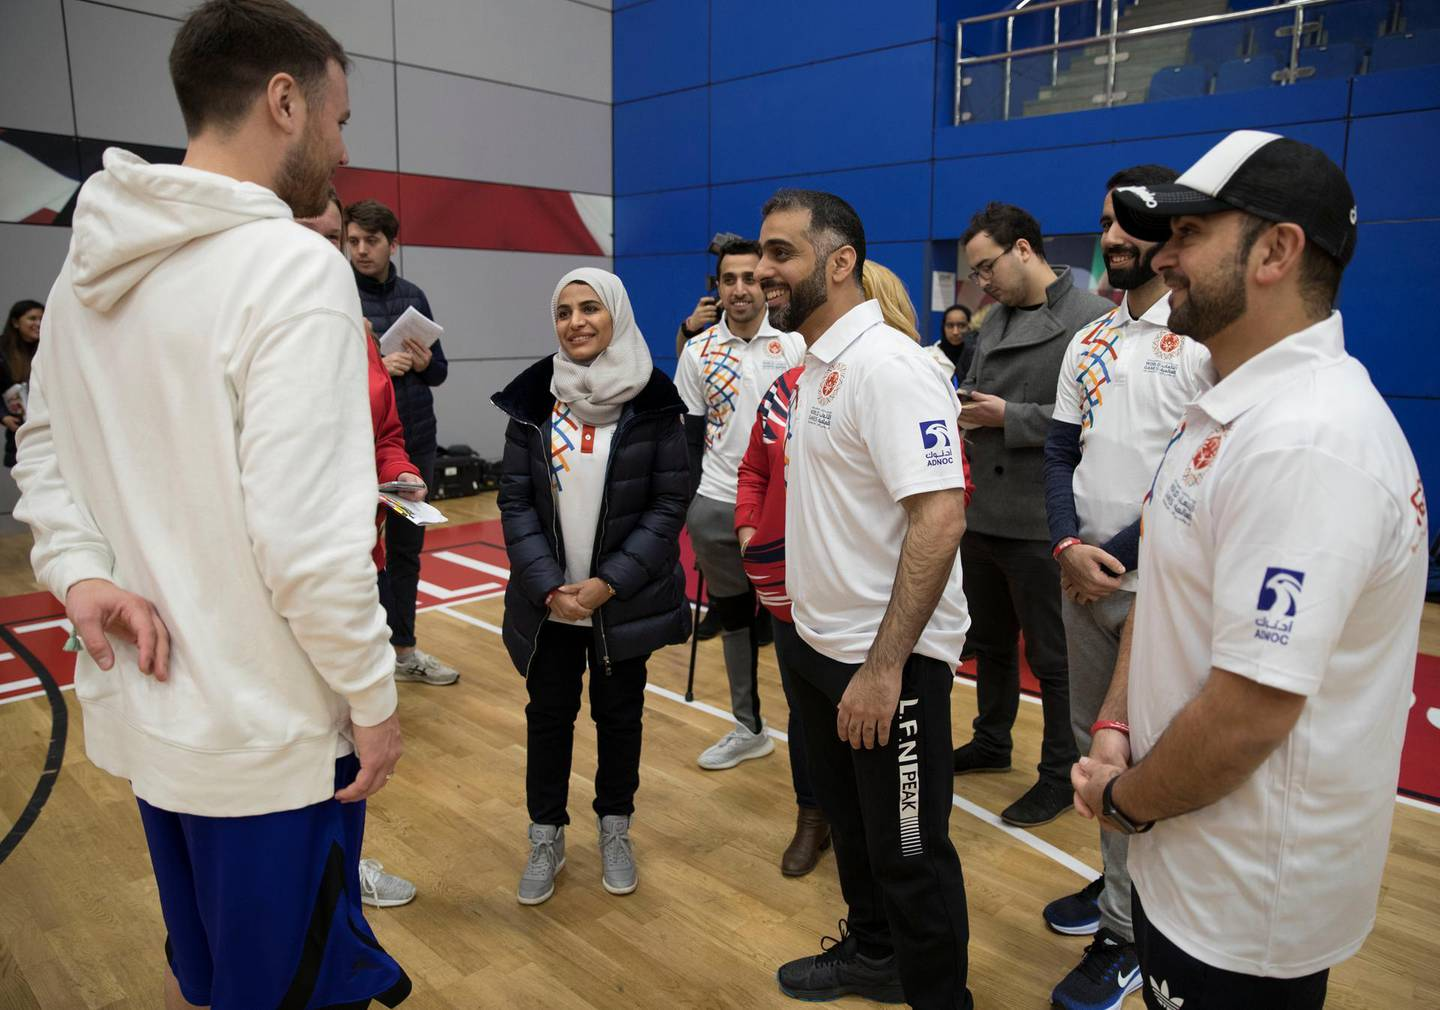 SHEFFIELD,UNITED KINGDOM. 19th January 2019. Rawdha Al Otaiba, Deputy Head of Mission at the UAE Embassy in London and other members of the embassy delegation meet athletes from the Special Olympics-GB Team during a training camp in Sheffield, United Kingdom, ahead of the Special Olympics World Games 2019 in Abu Dhabi. Stephen Lock for the National